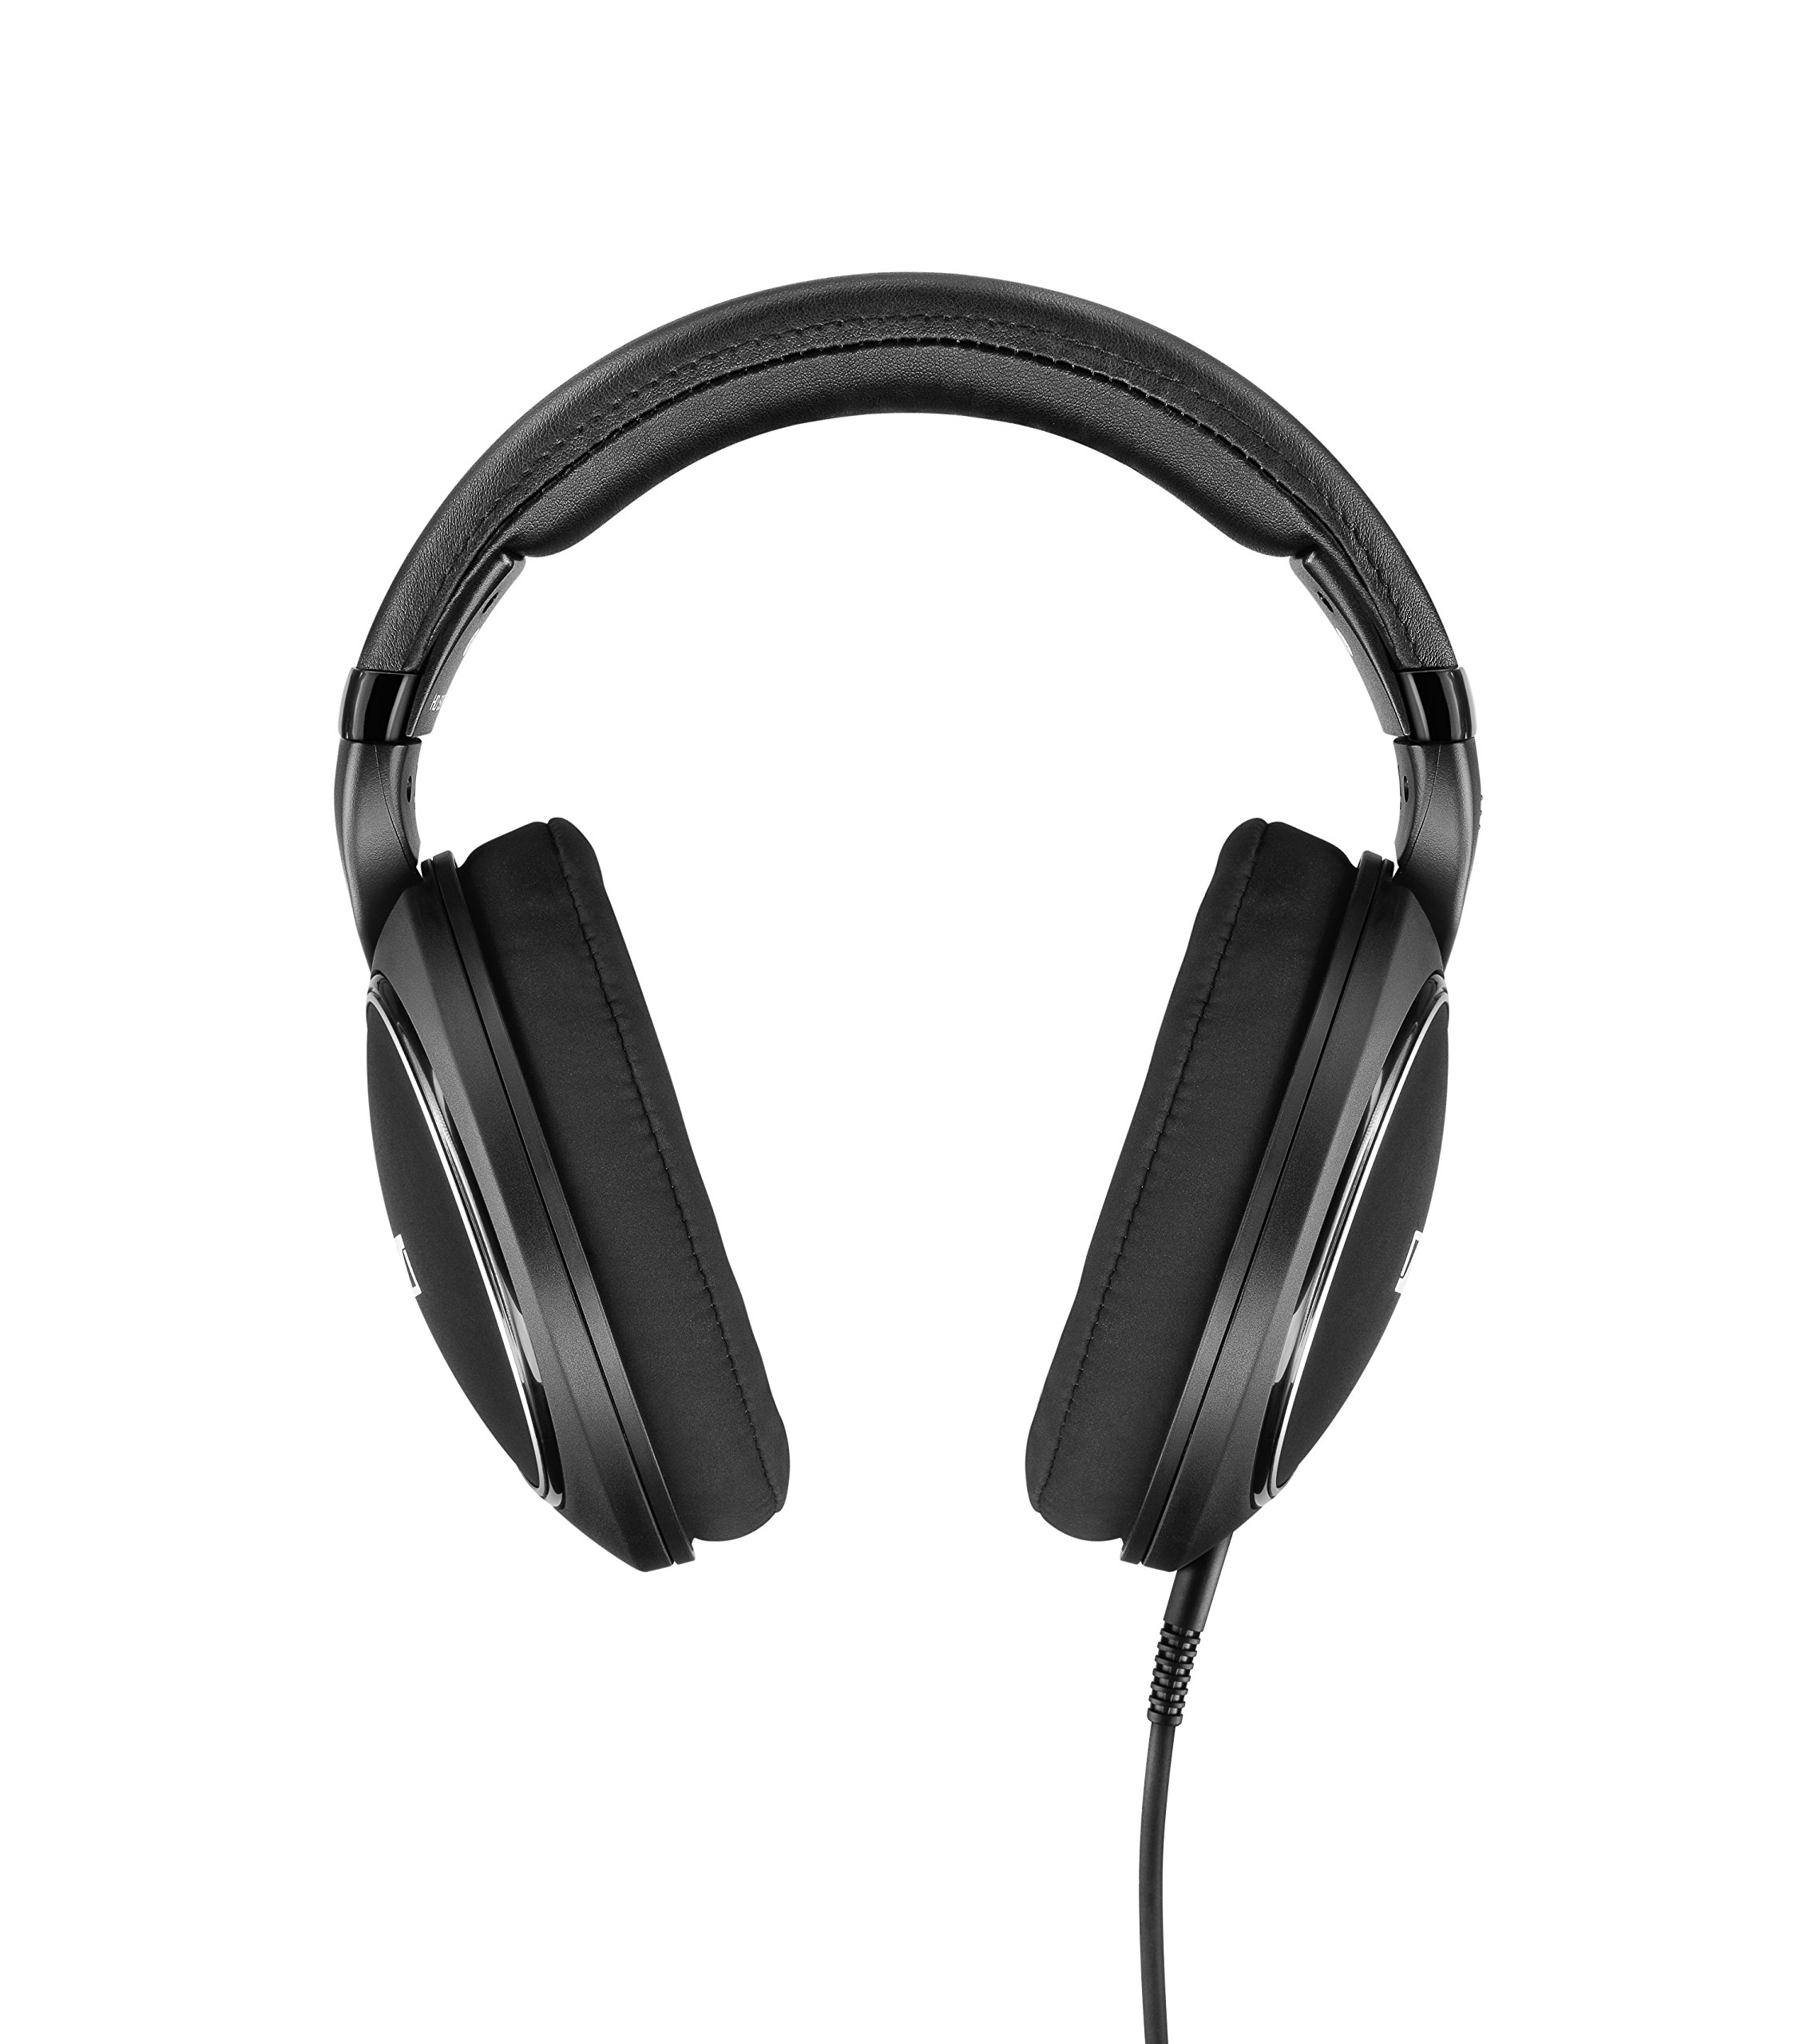 Sennheiser HD 598 Cs Closed Back Headphone by Sennheiser